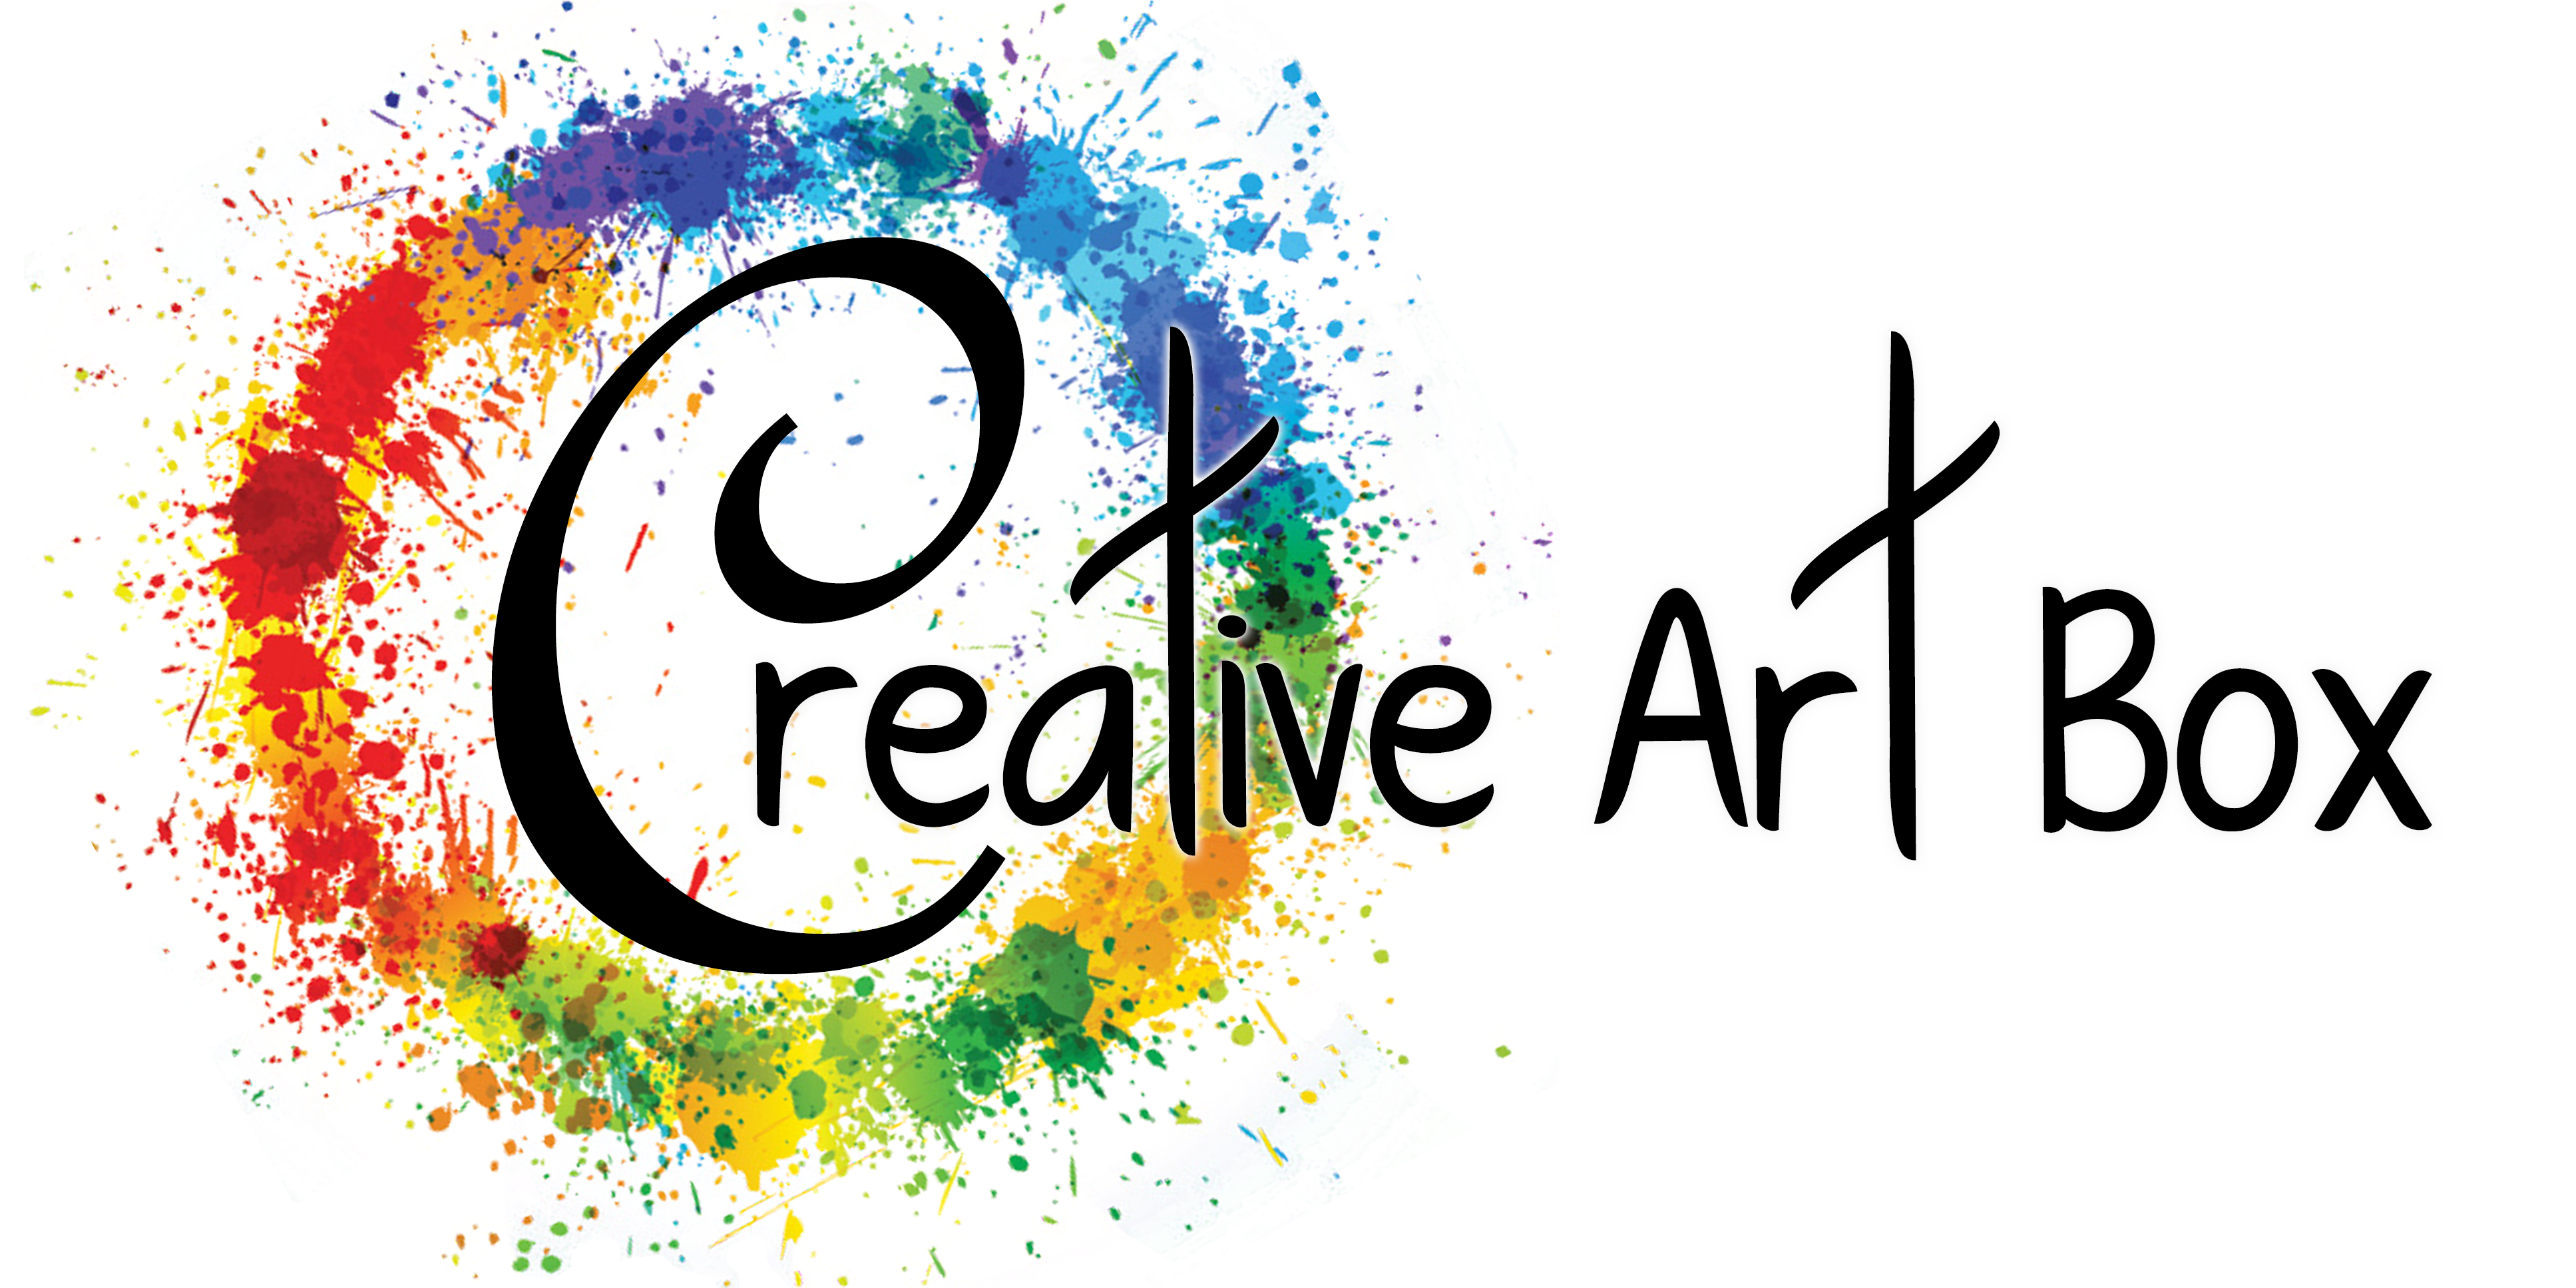 creative artists Florida based design build firm with over 20 years of experience creating  interactive and engaging healthcare, corporate, and retail environments.